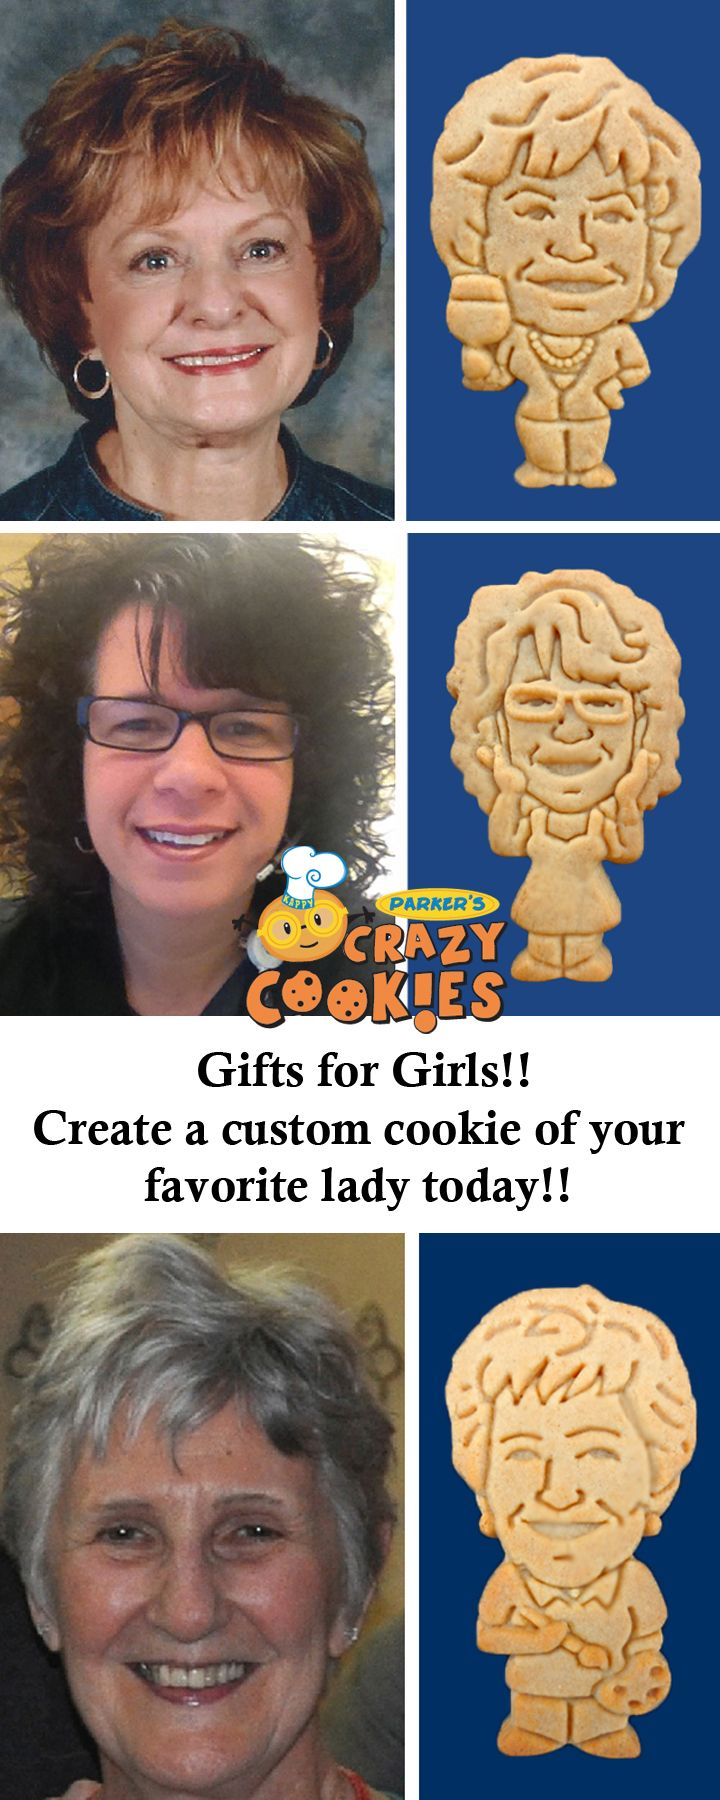 Give a gift your favorite lady will never forget with a custom cookie from Parker's Crazy Cookies!! Discover the magic at www.parkerscrazycookies.com. As seen on the Food Network!